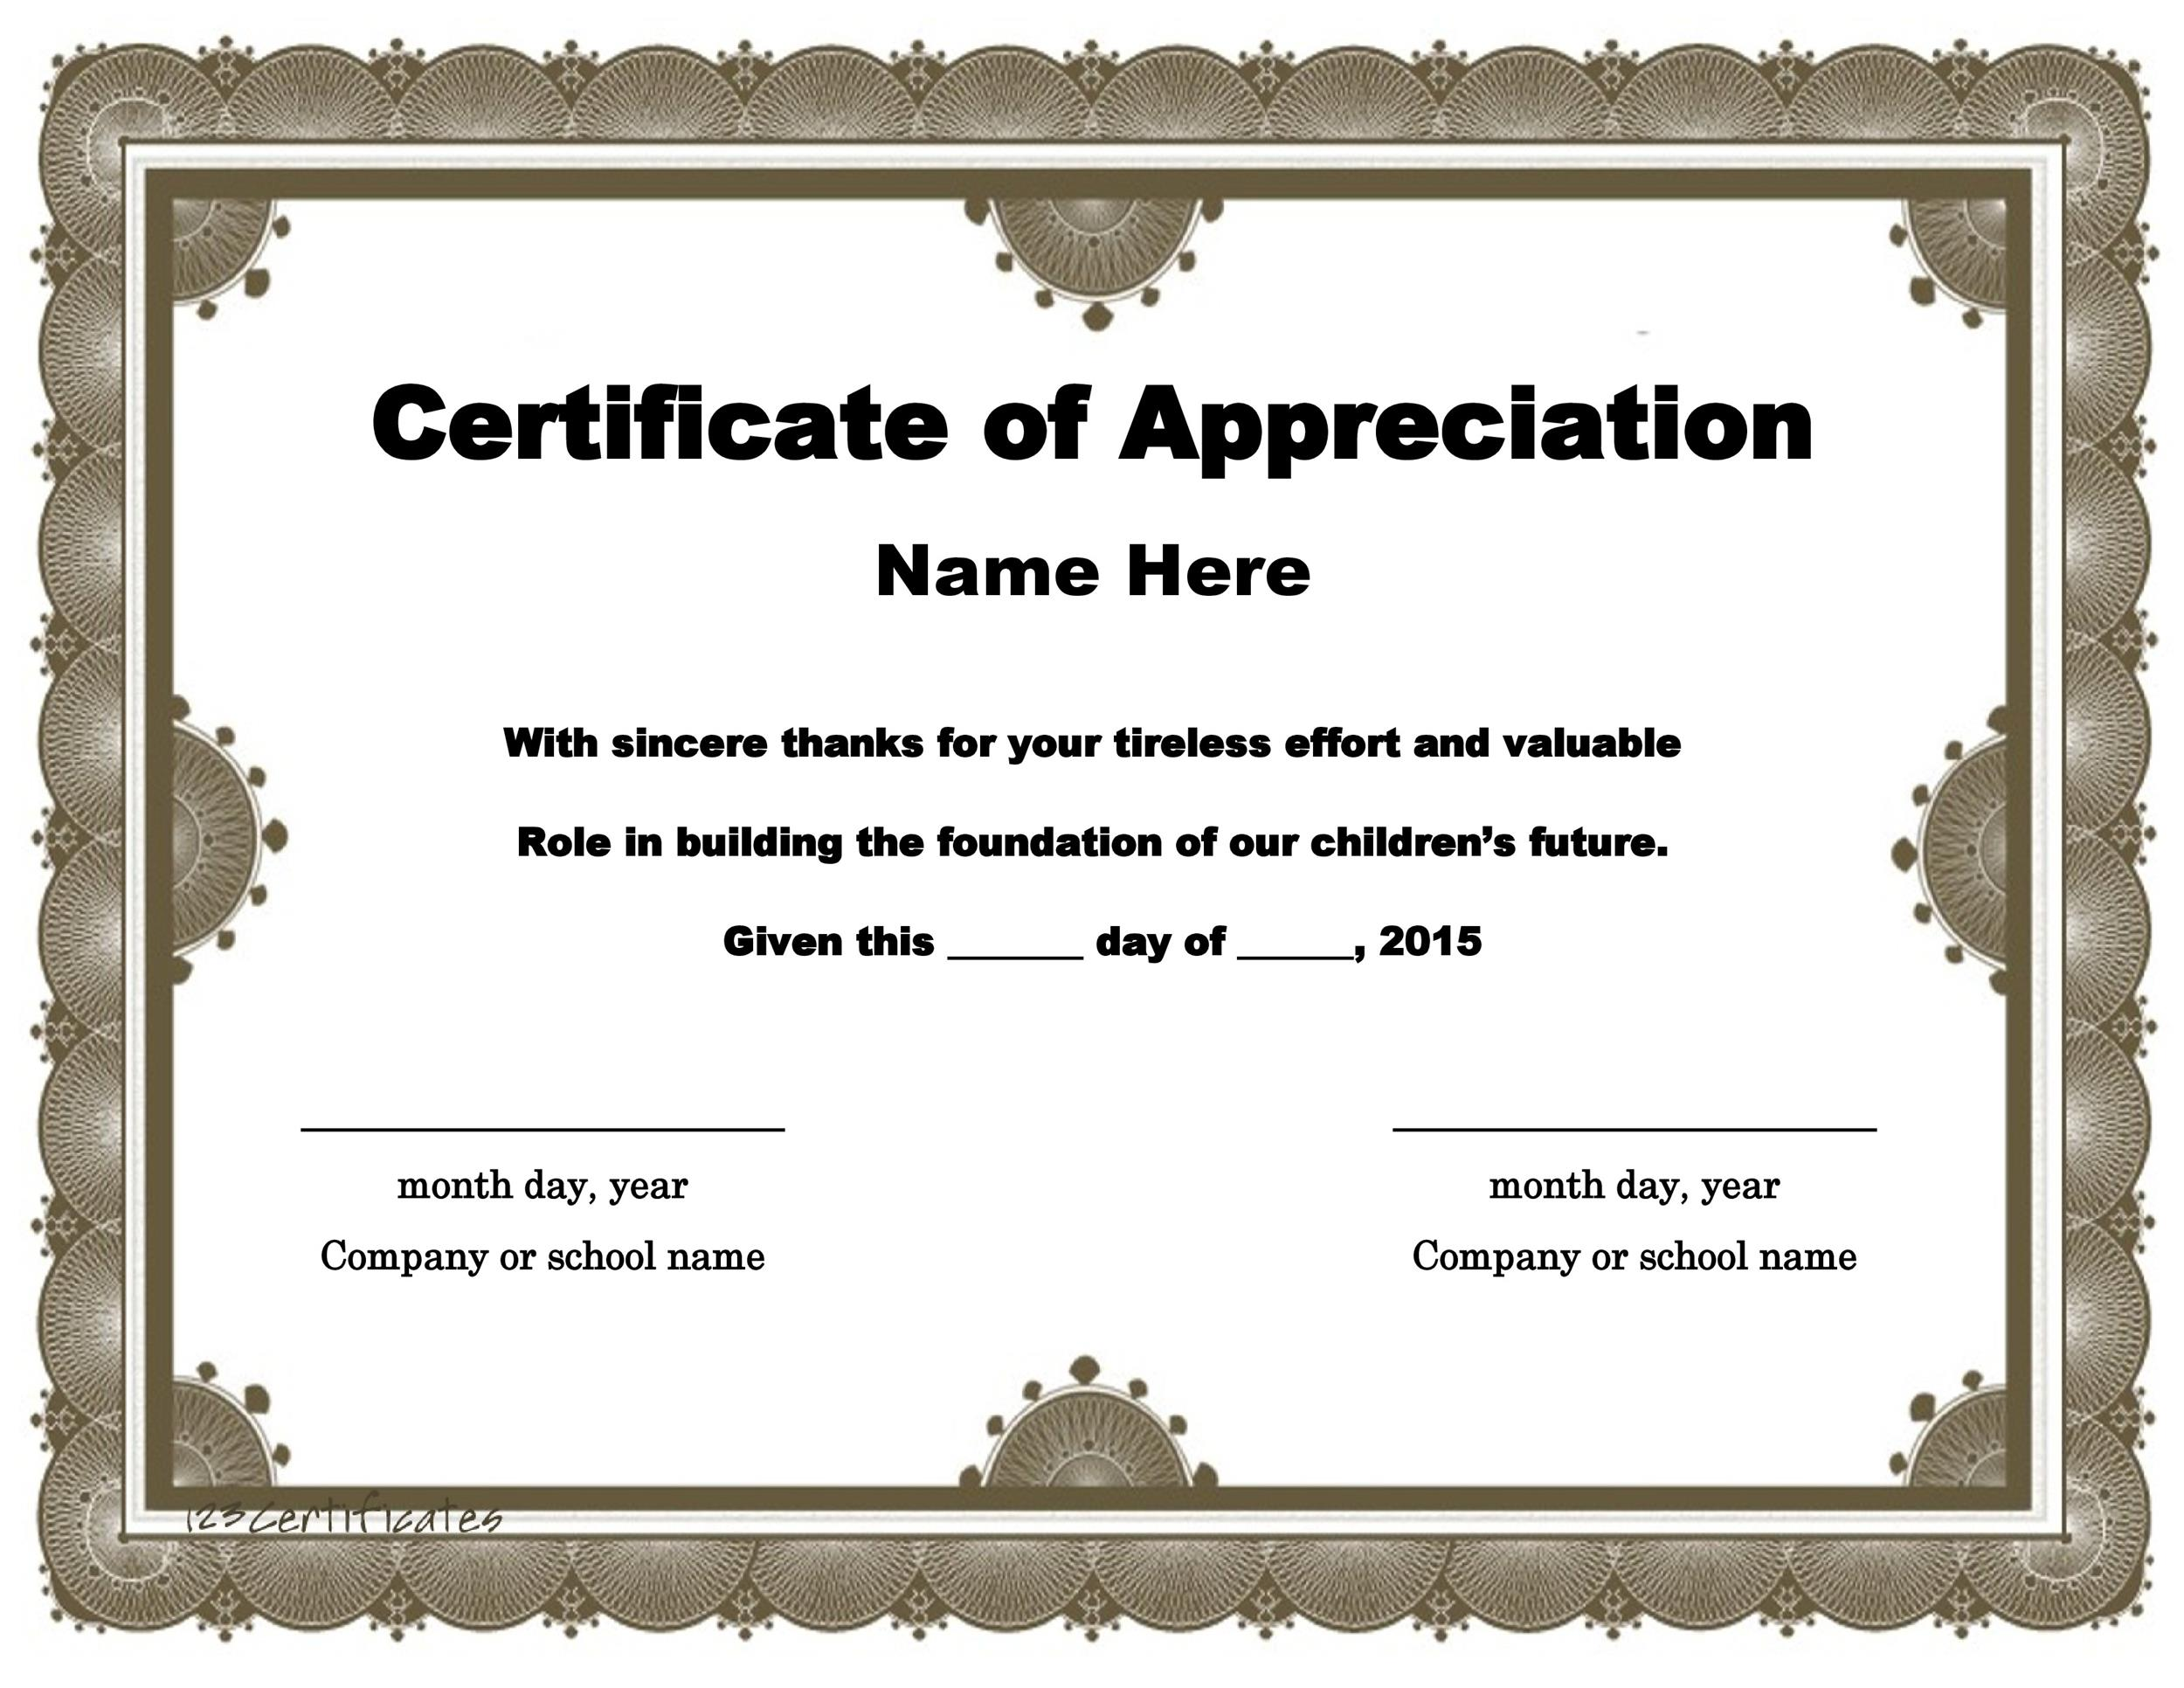 Certificate beautiful certificate template vector certificate free certificate of appreciation templates and letters yadclub Choice Image